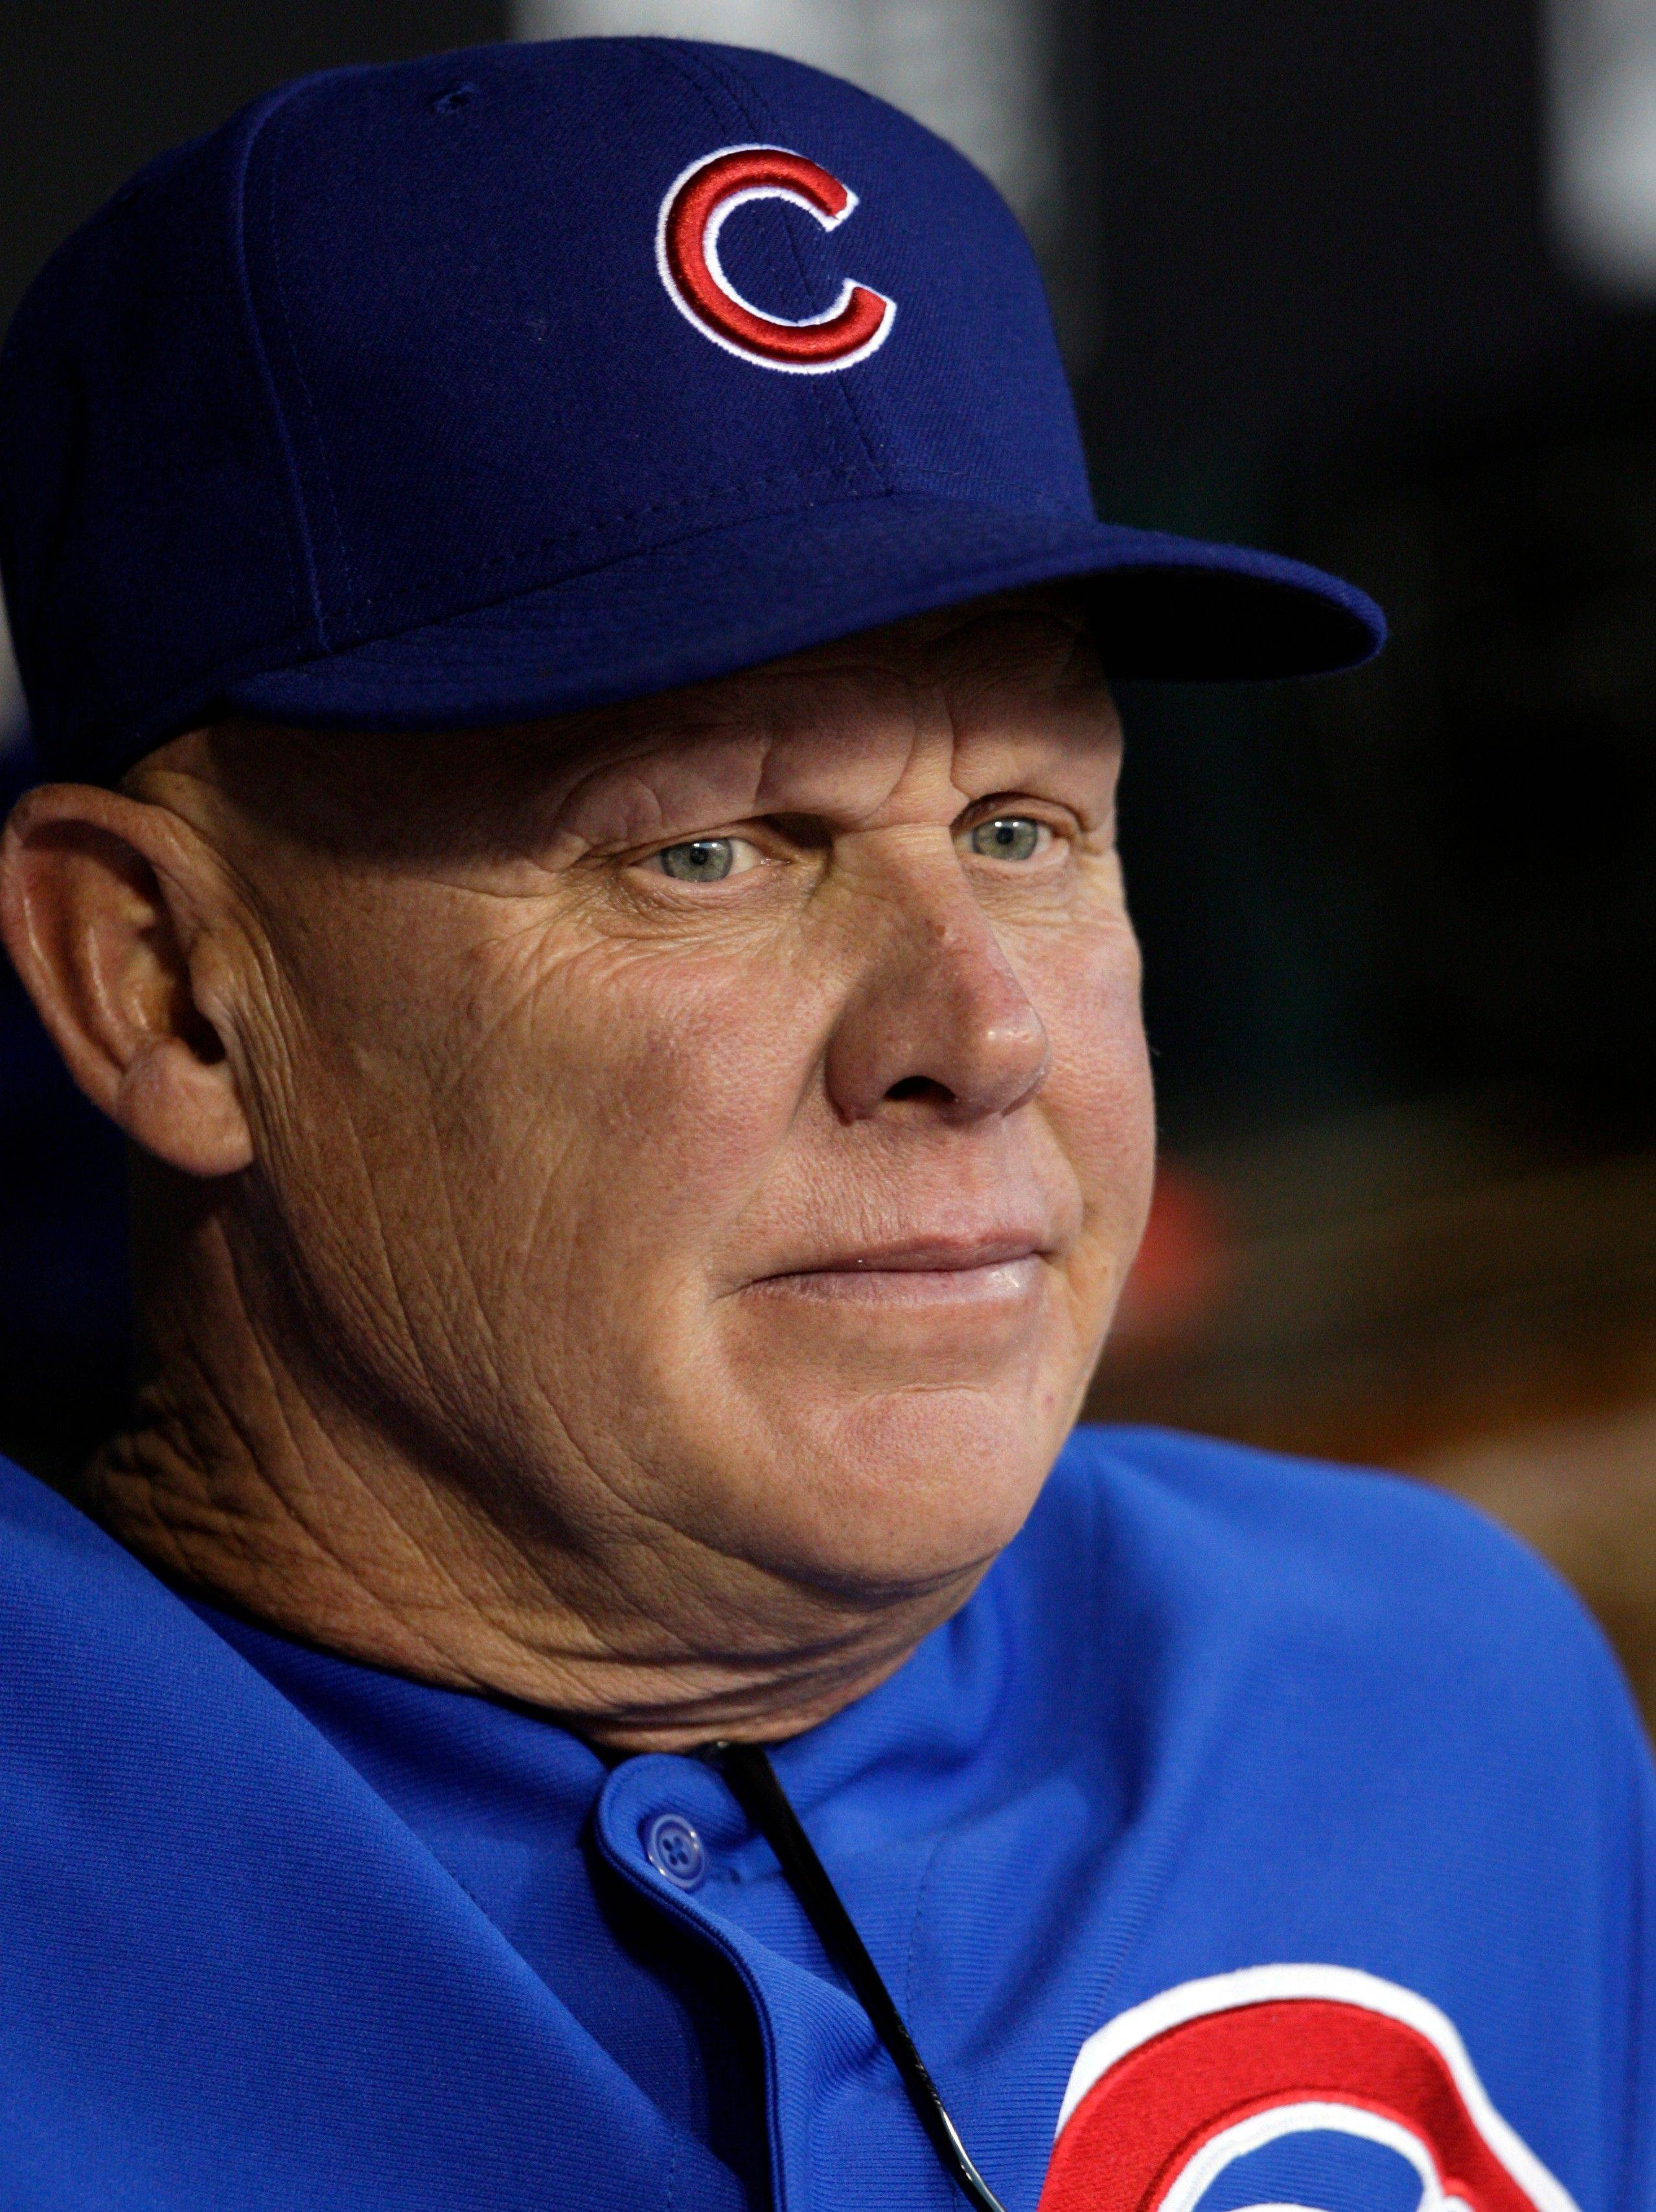 Chicago Cubs named Mike Quade manager today.